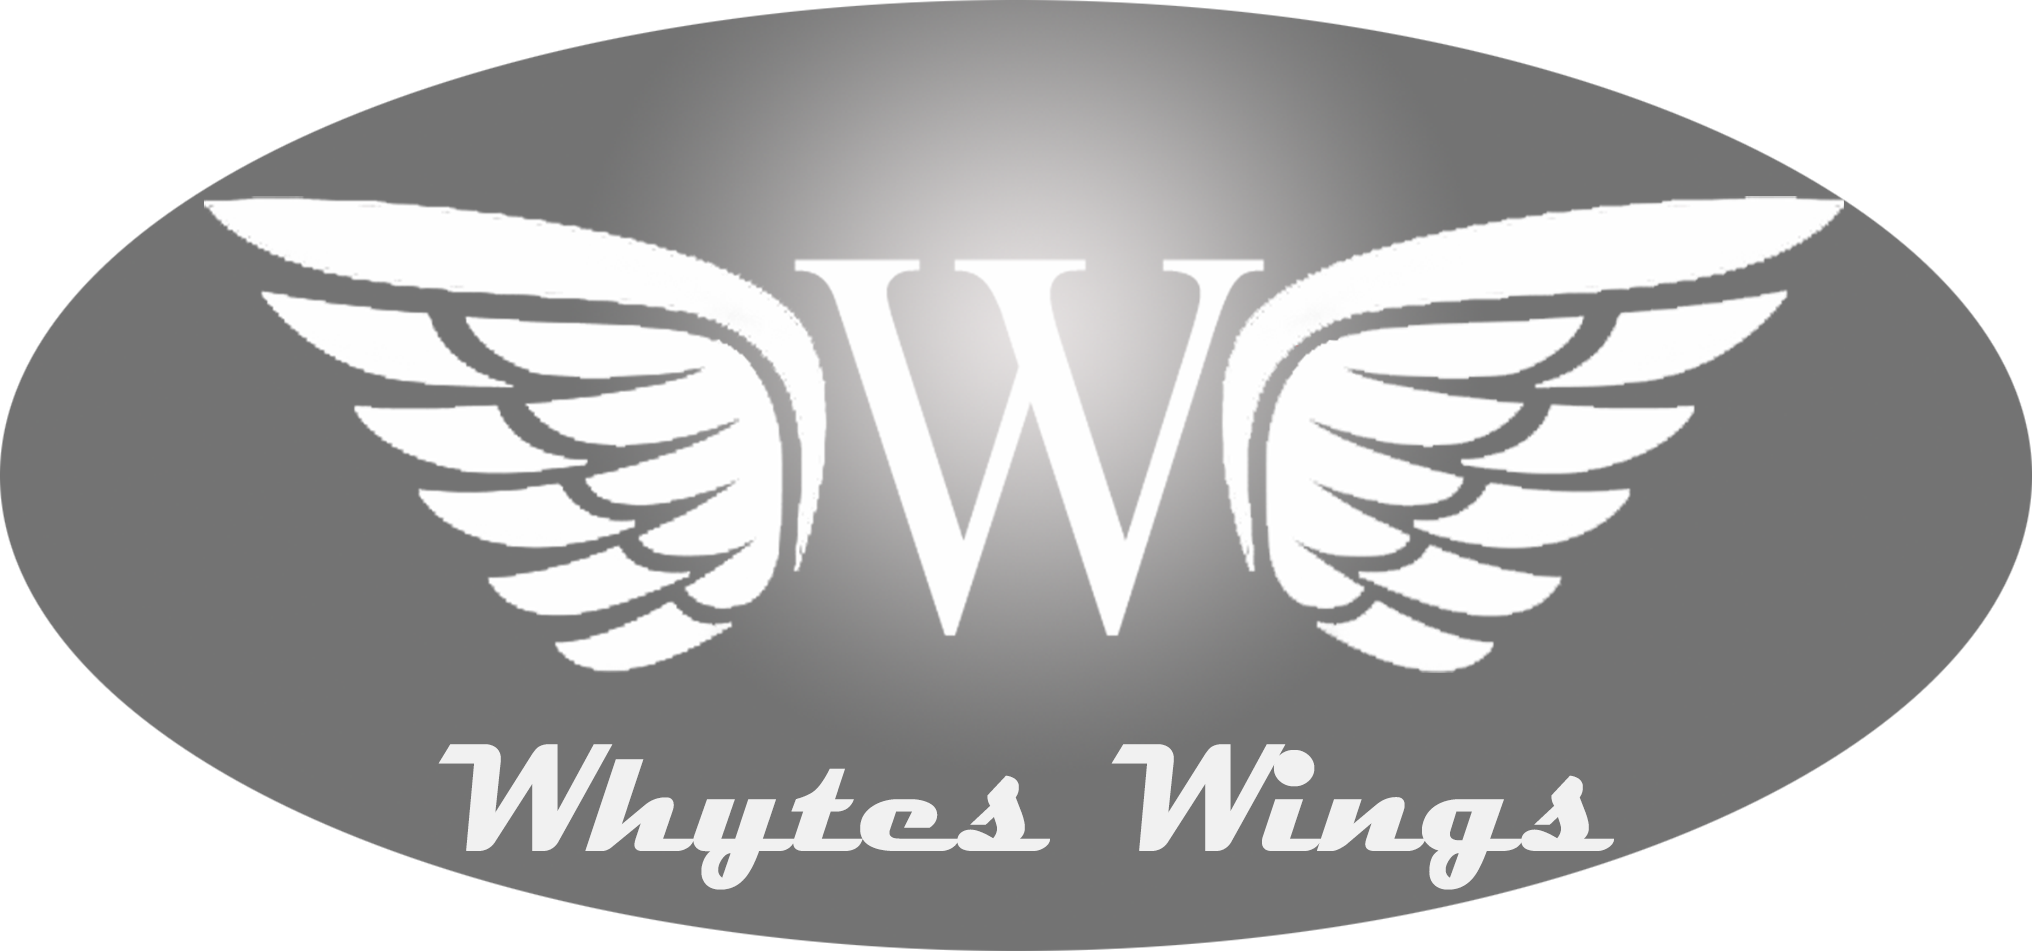 Whytes Wings